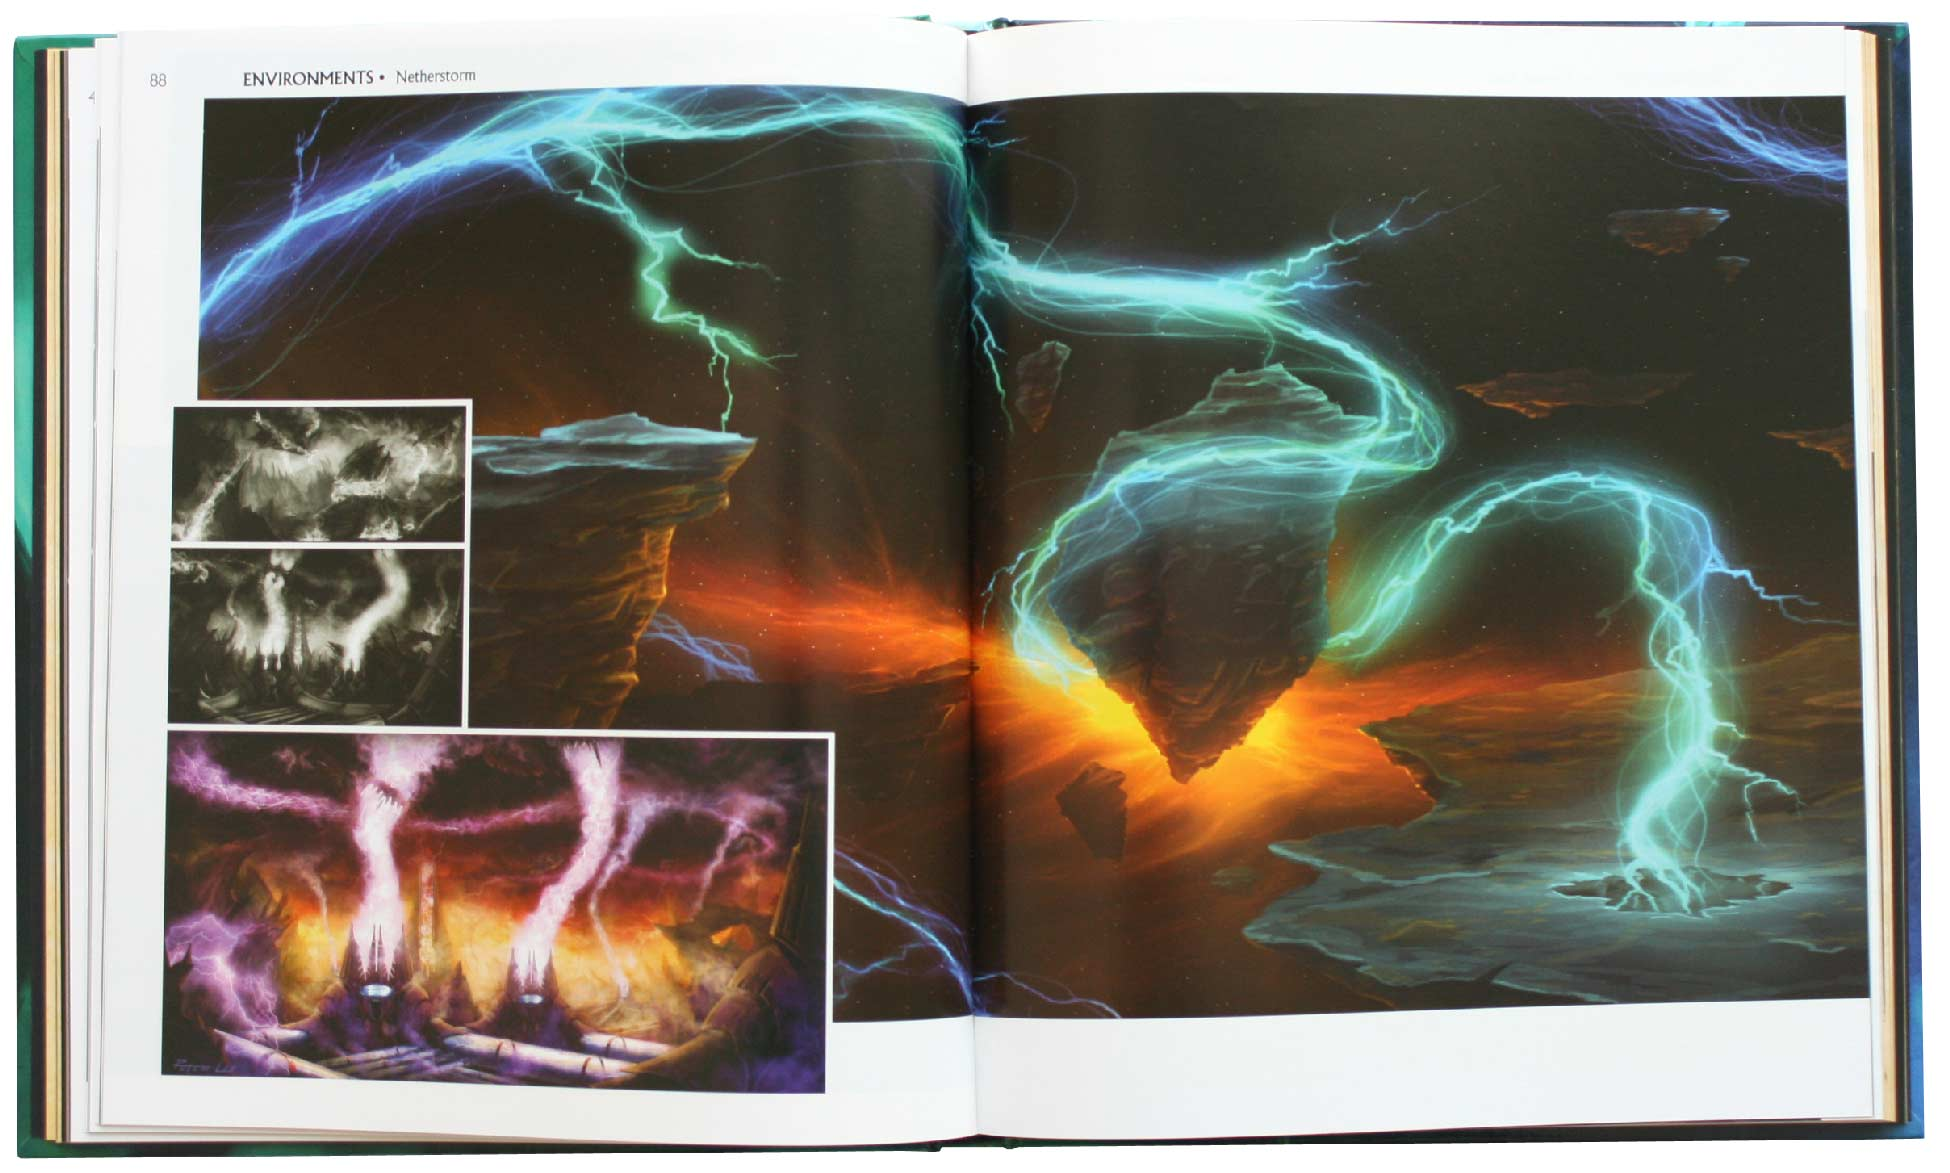 Page 88 et 89 de l'Art book : The Art of the Burning Crusade (World of Warcraft)